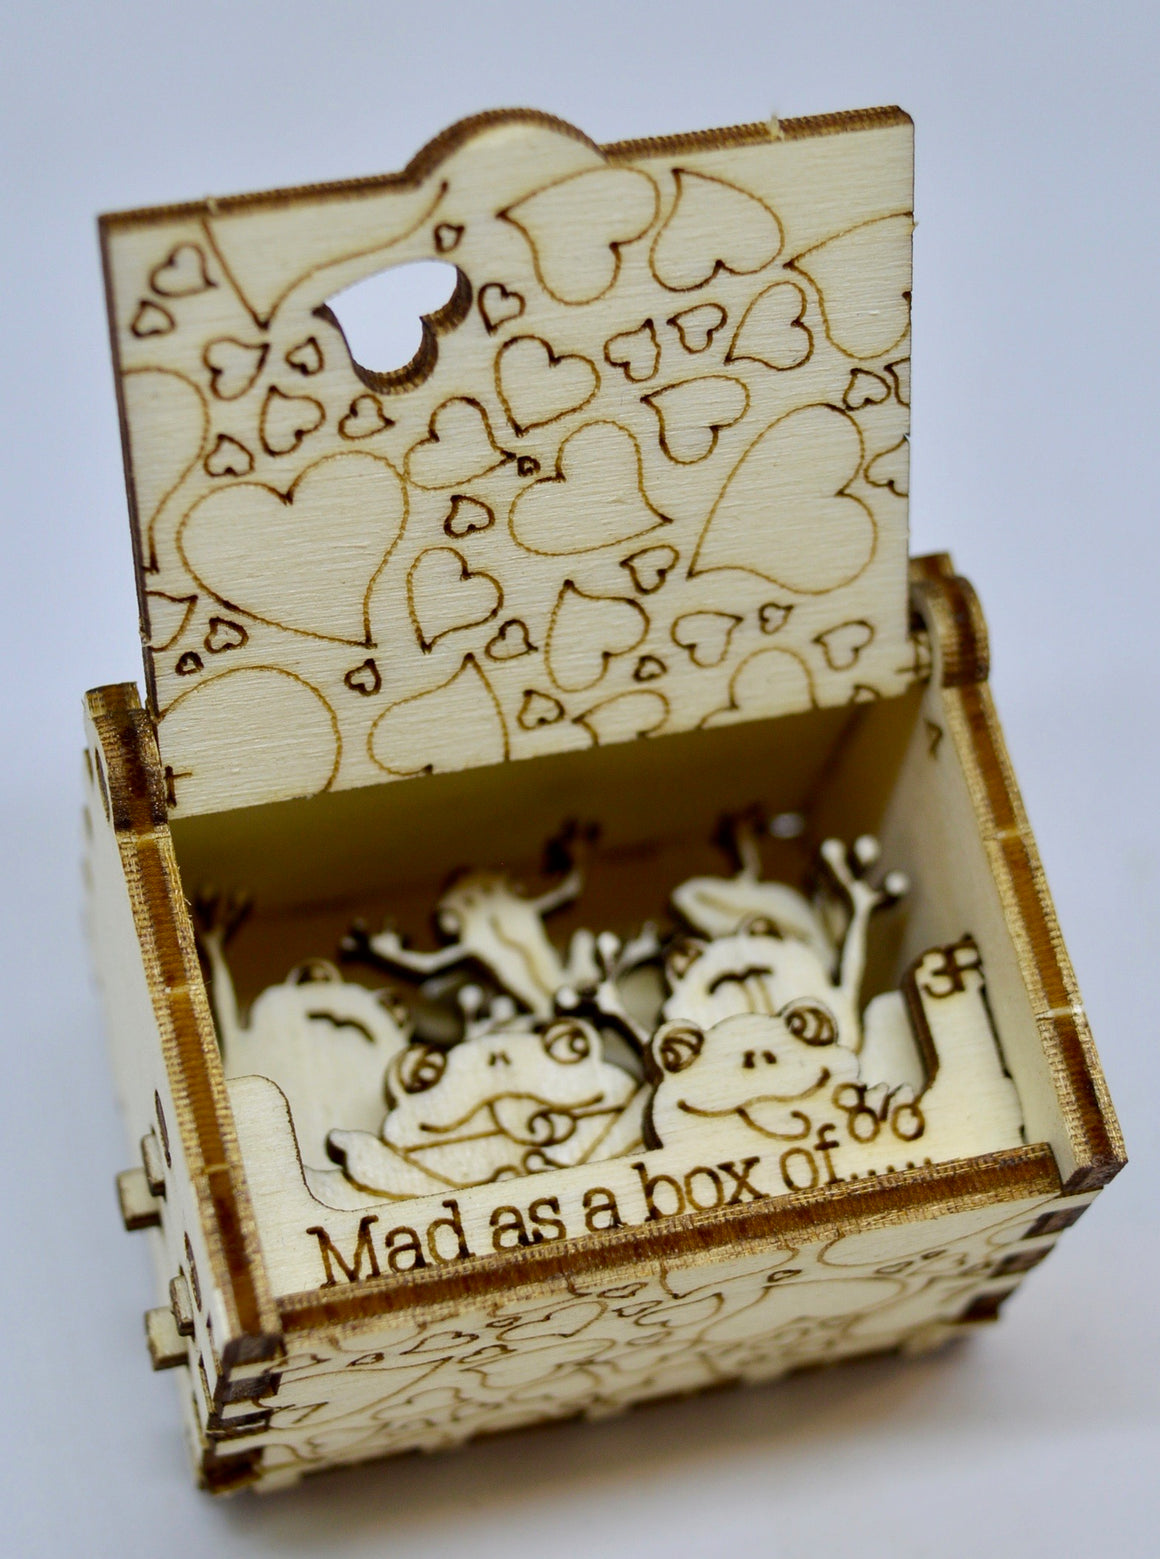 Pop Up Wooden 3D Card. Box silhouette. Mad as a box of frogs. Box.14.